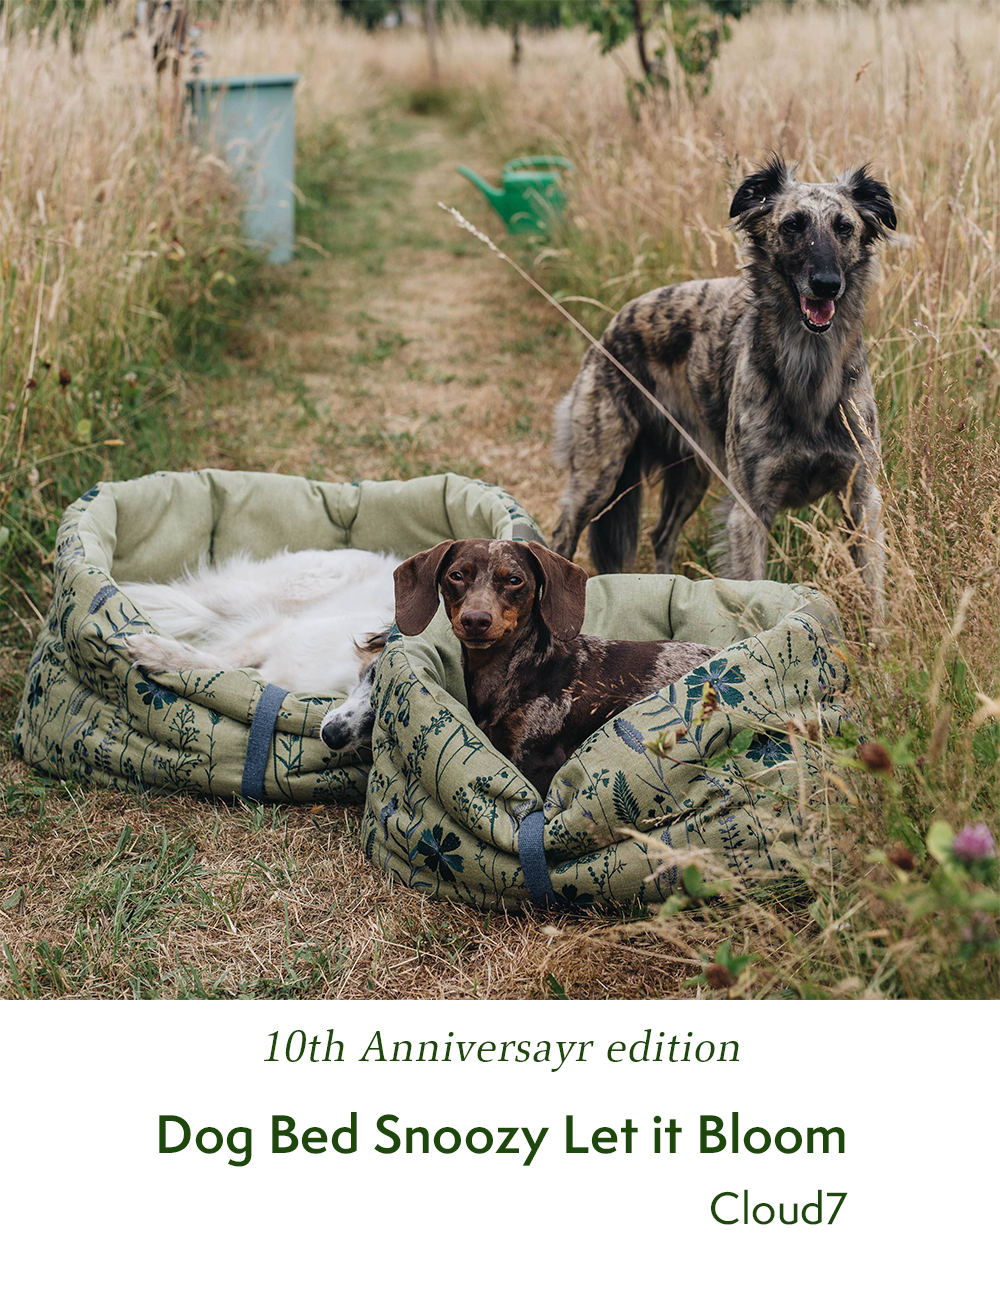 Cloud7   DOG BED SNOOZY LET IT BLOOM   設立10周年記念数量限定